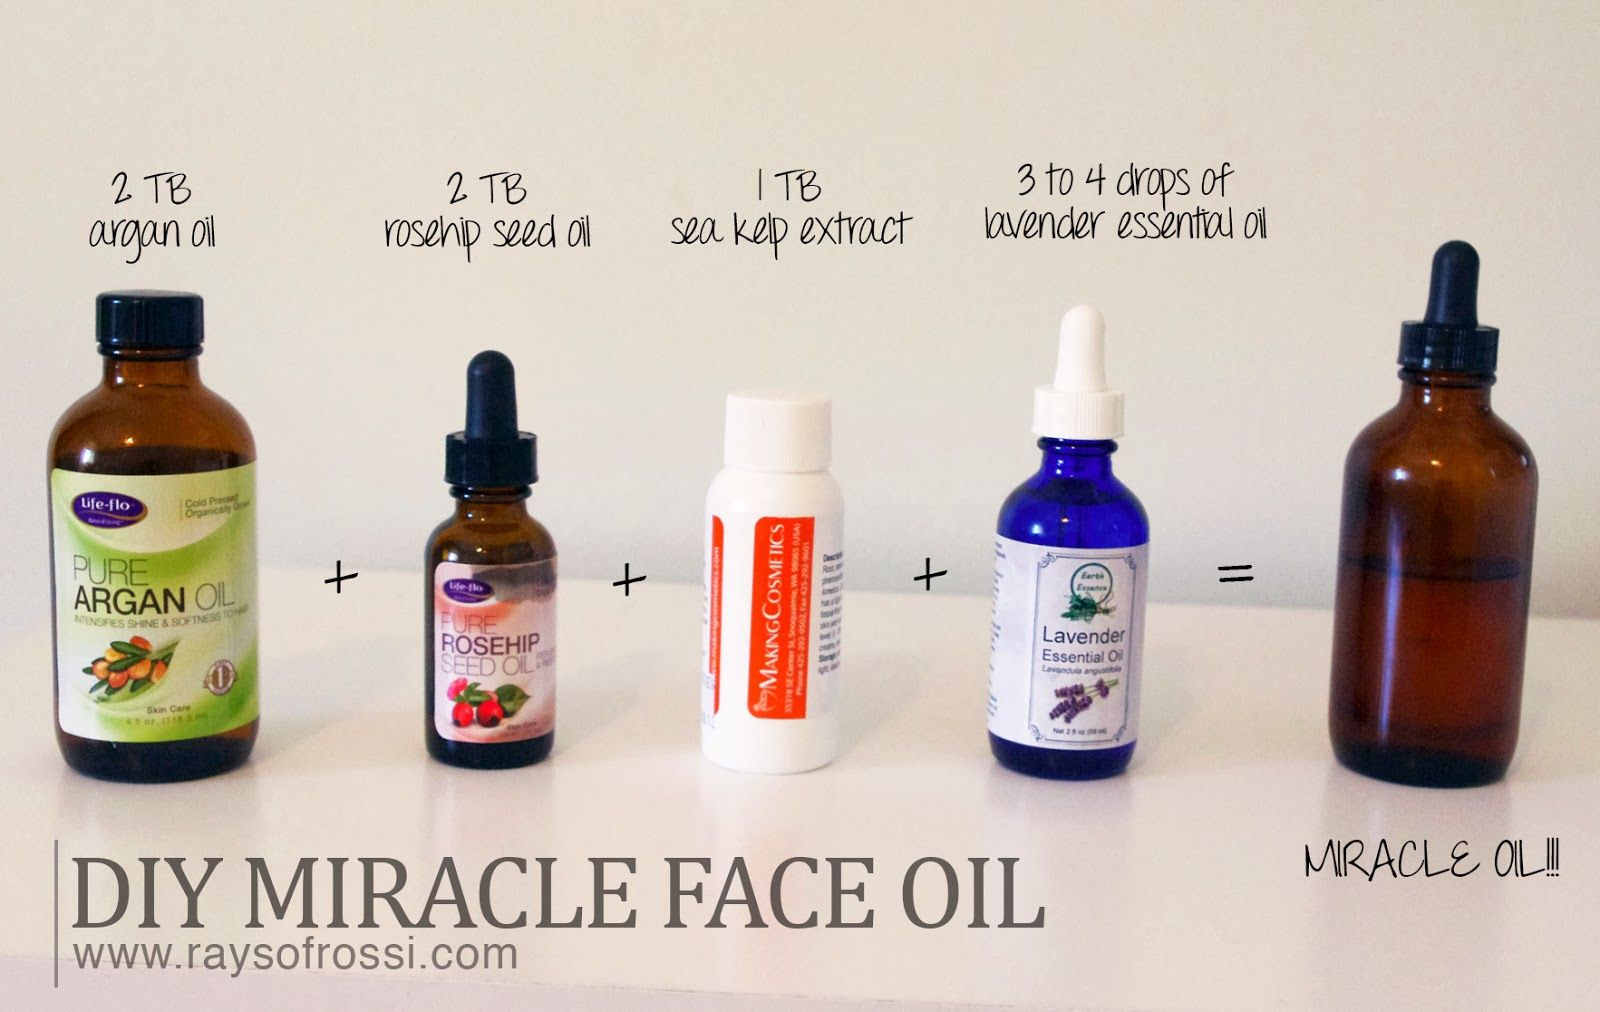 MY MIRACLE FACE OIL (HOMEMADE!) DIY Face Oil Moisturizer